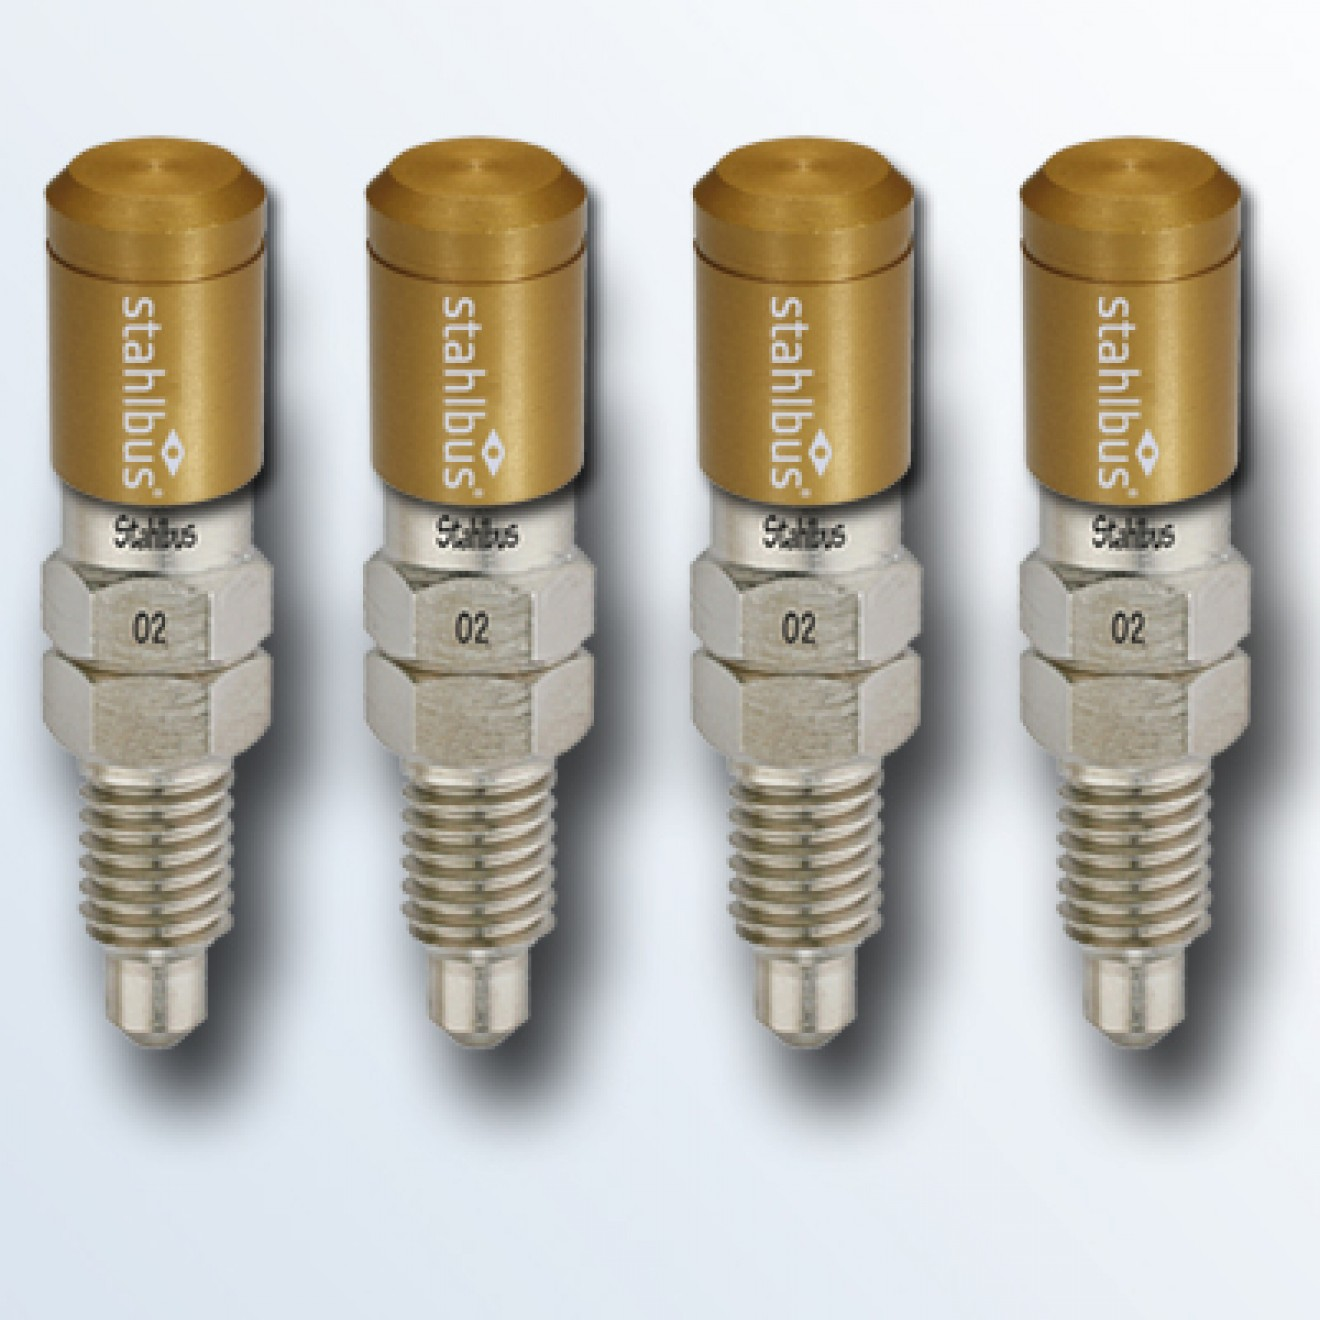 4-piece set stahlbus Bleeder valve M8x1.25x20mm, steel with golden dust cap